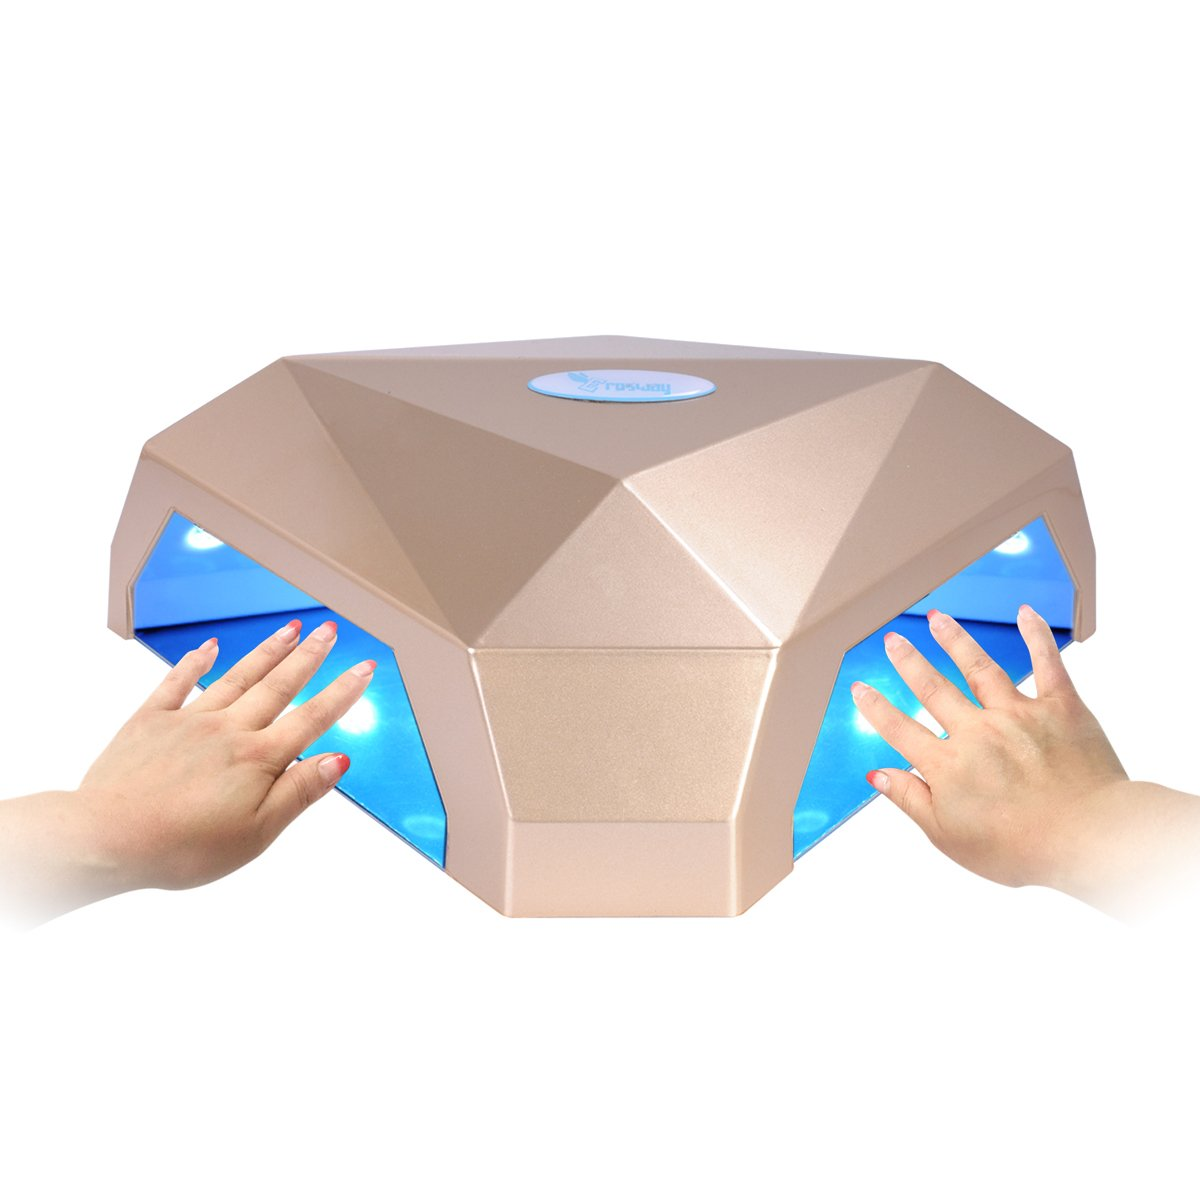 LED Nail Lamp, Erosway Nail Lamp 60w Two Hands Gel Nail Polish Dryer with 5-120s Automatic LCD Timer Display and Infrared Sensor or Without Sensor. Treats LED and UV Nail Gels. (Gold)